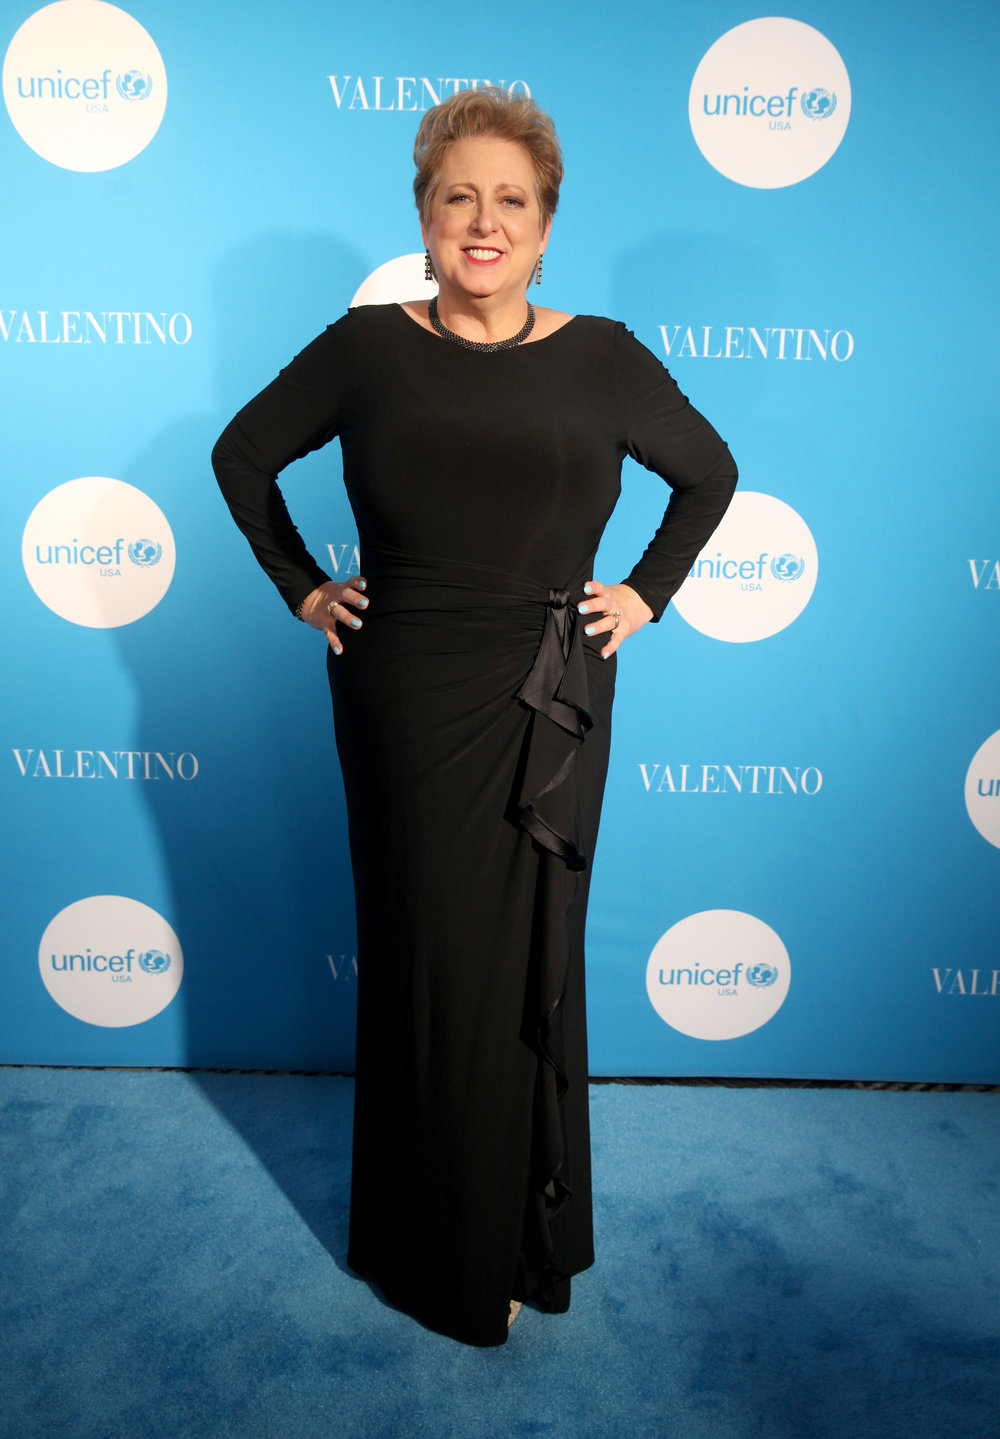 UNICEF USA President & CEO Caryl Stern (Photo by Getty Images)